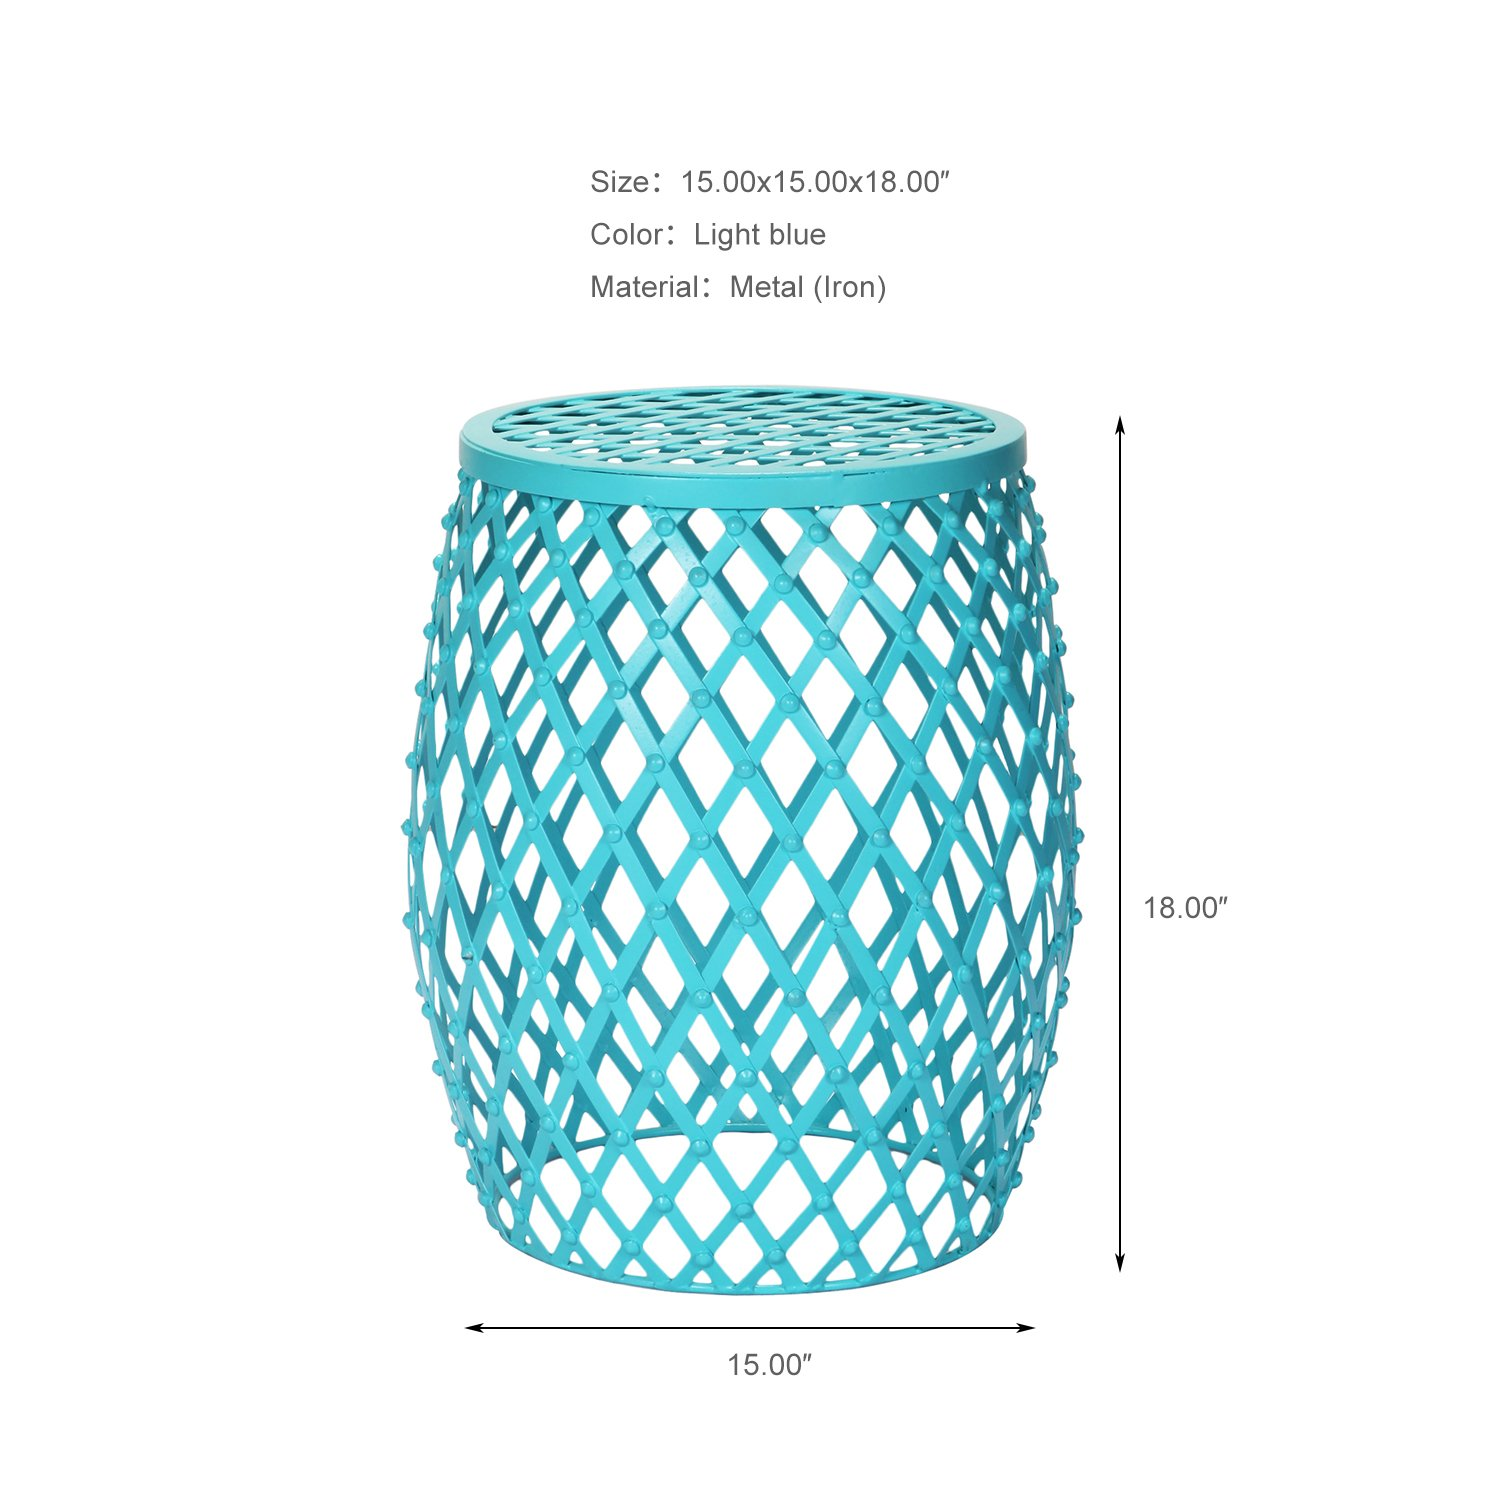 joveco stylish metal drum wire round end table side accent sofa light blue kitchen dining tiffany lily lamp small chest drawers for hallway decorative lamps home outdoor furniture